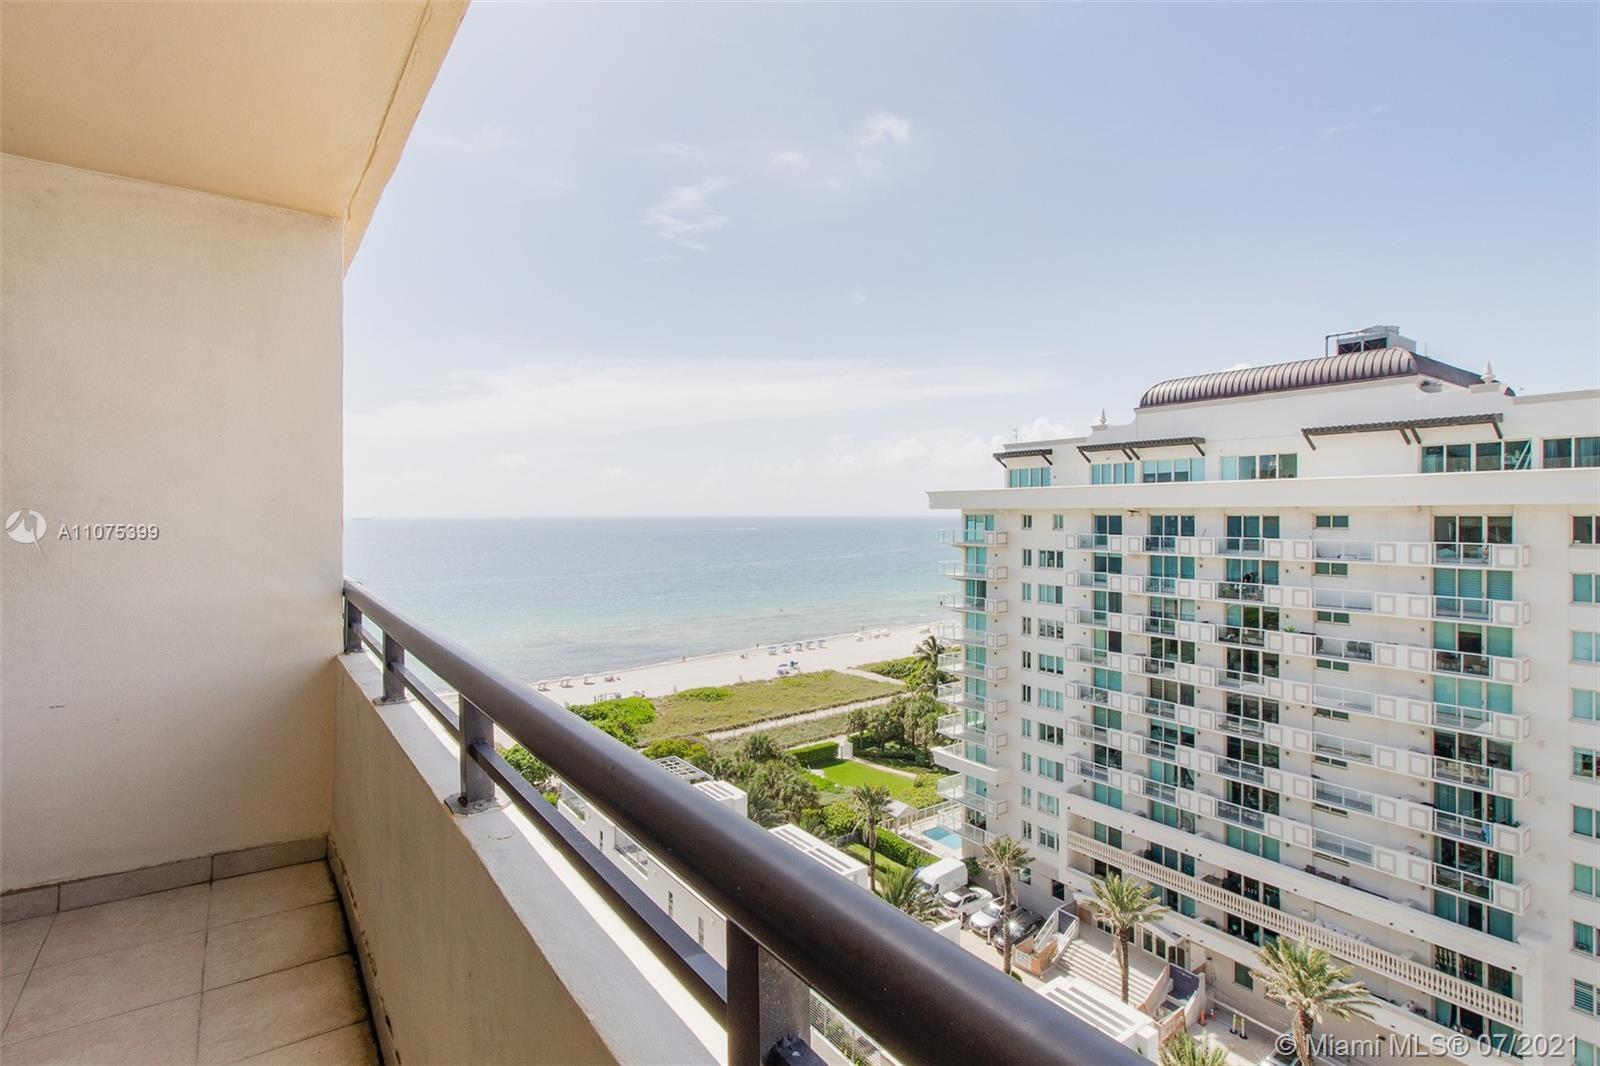 Enjoy beautiful views of the ocean and city from this large 1 bedroom/ 2 bath + den on a high floor